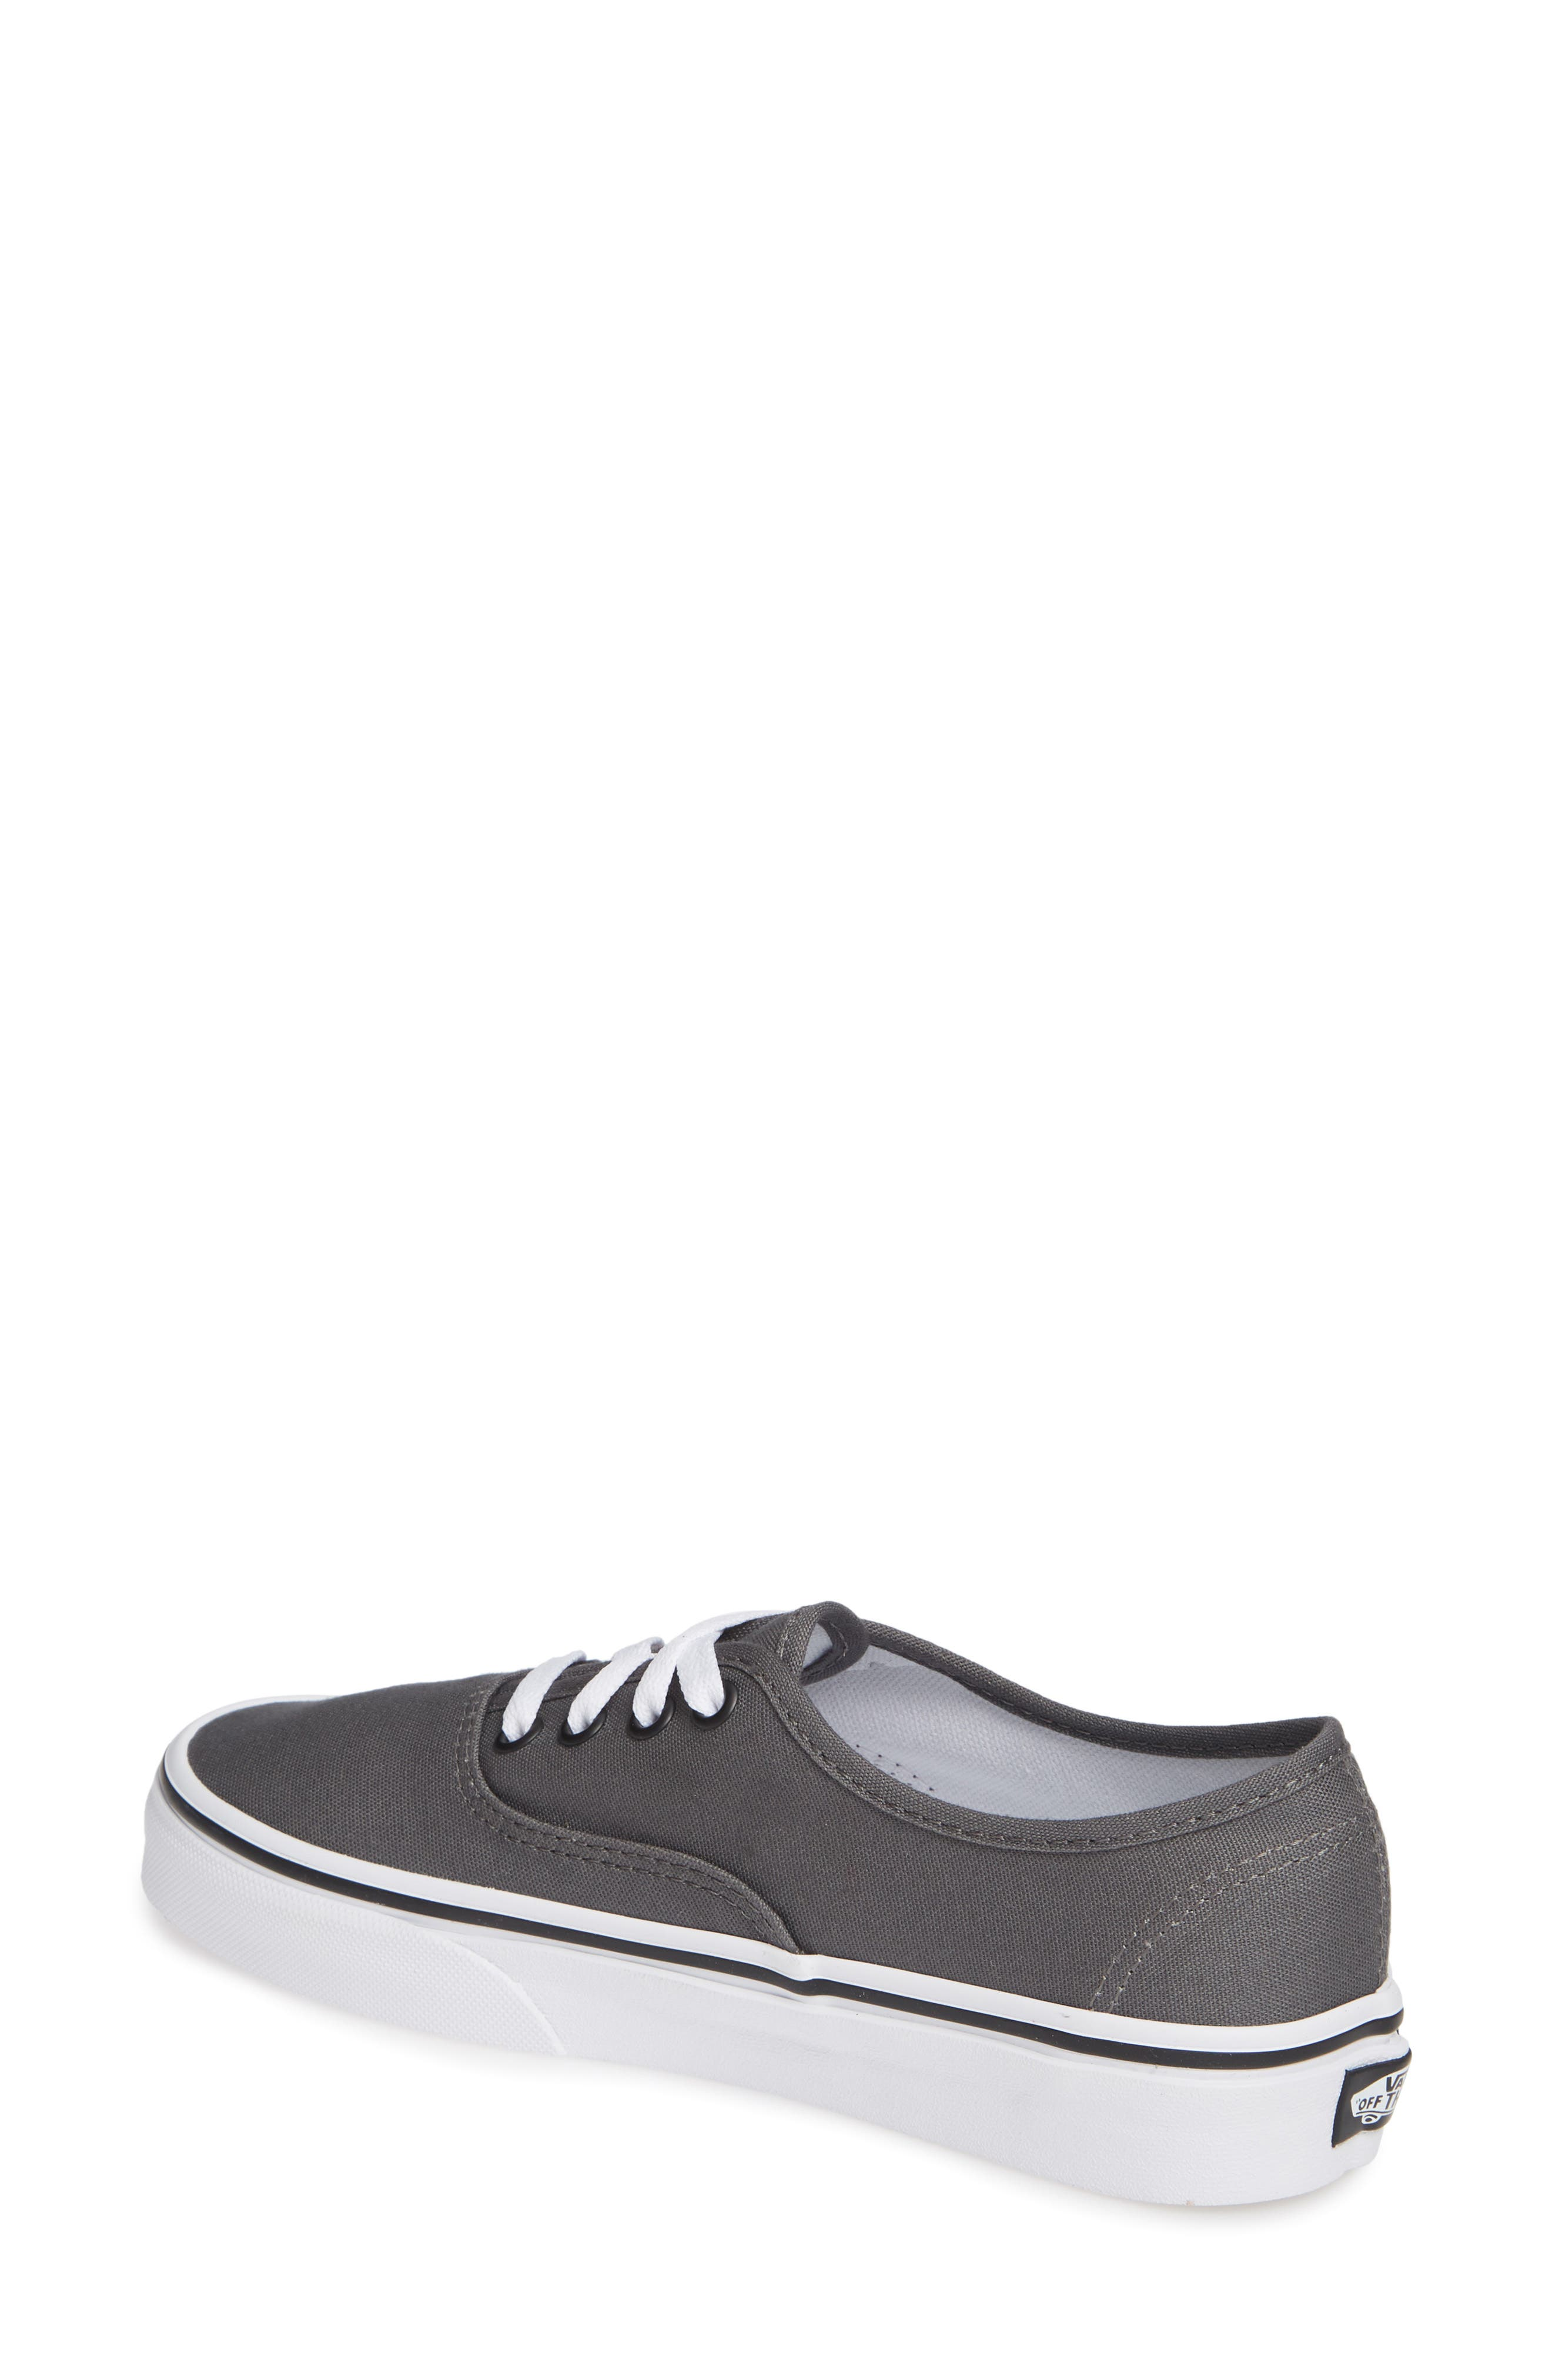 VANS, 'Authentic' Sneaker, Alternate thumbnail 3, color, PEWTER/BLACK